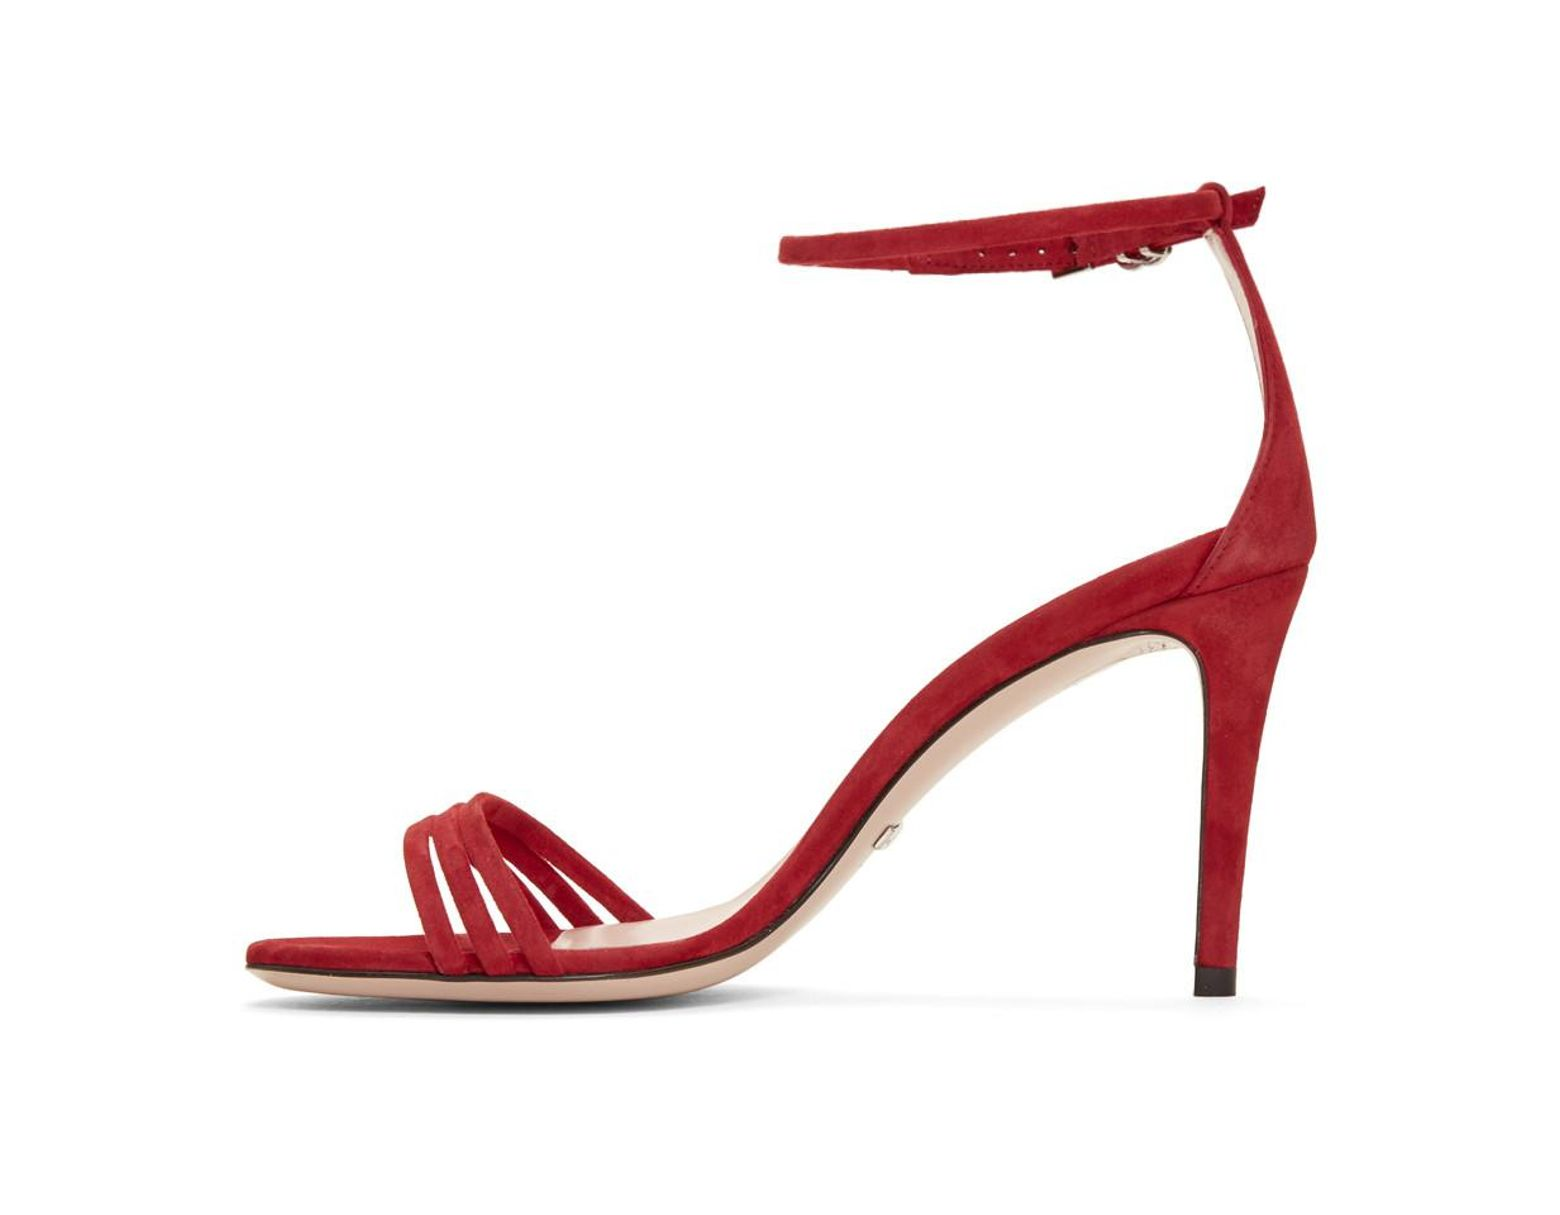 694485a85 Gucci Red Suede Isle Heeled Sandals in Red - Save 12% - Lyst